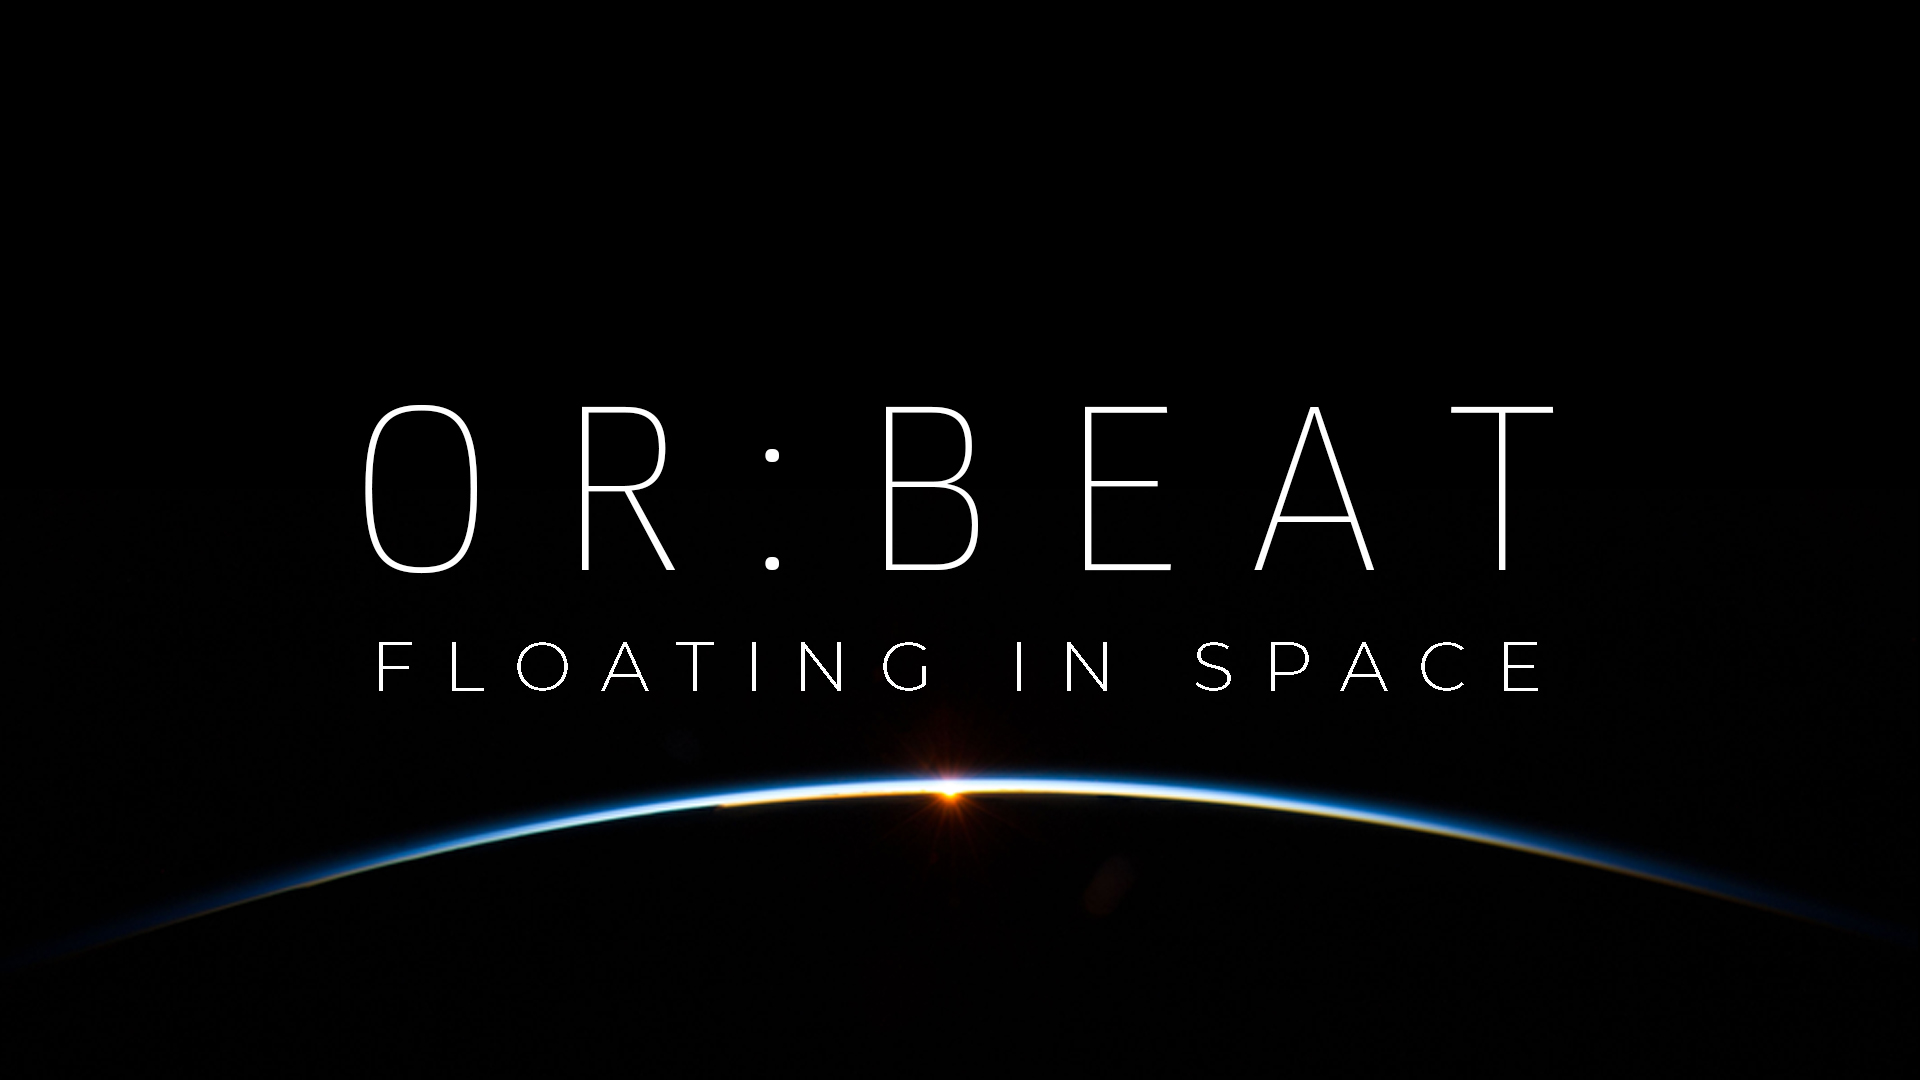 OR:BEAT floating in space